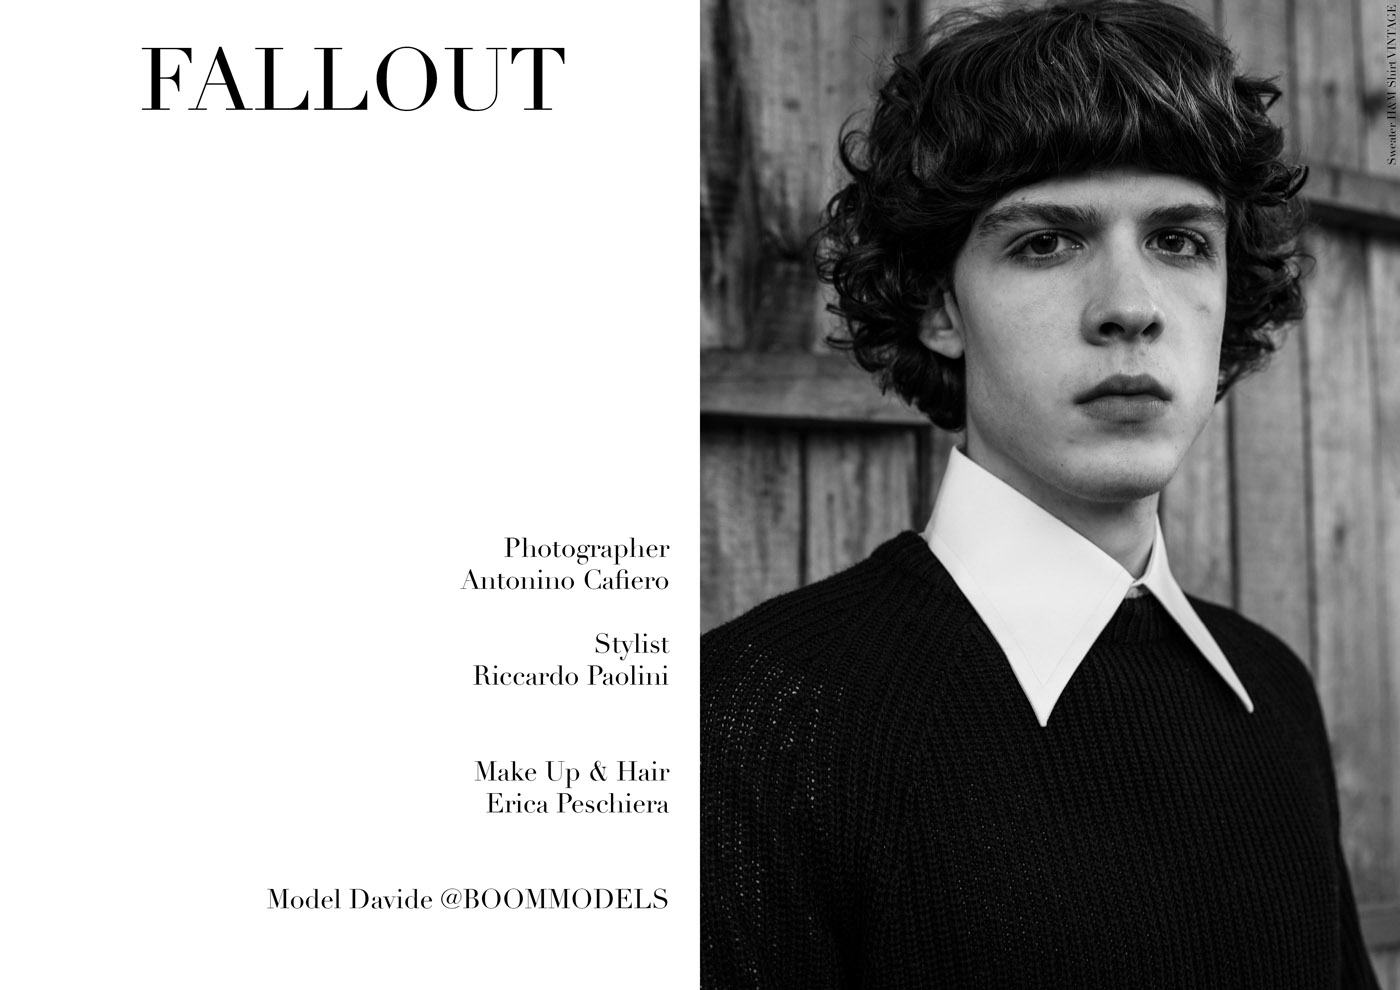 FALLOUT by Antonino Cafiero for CHASSEUR MAGAZINE